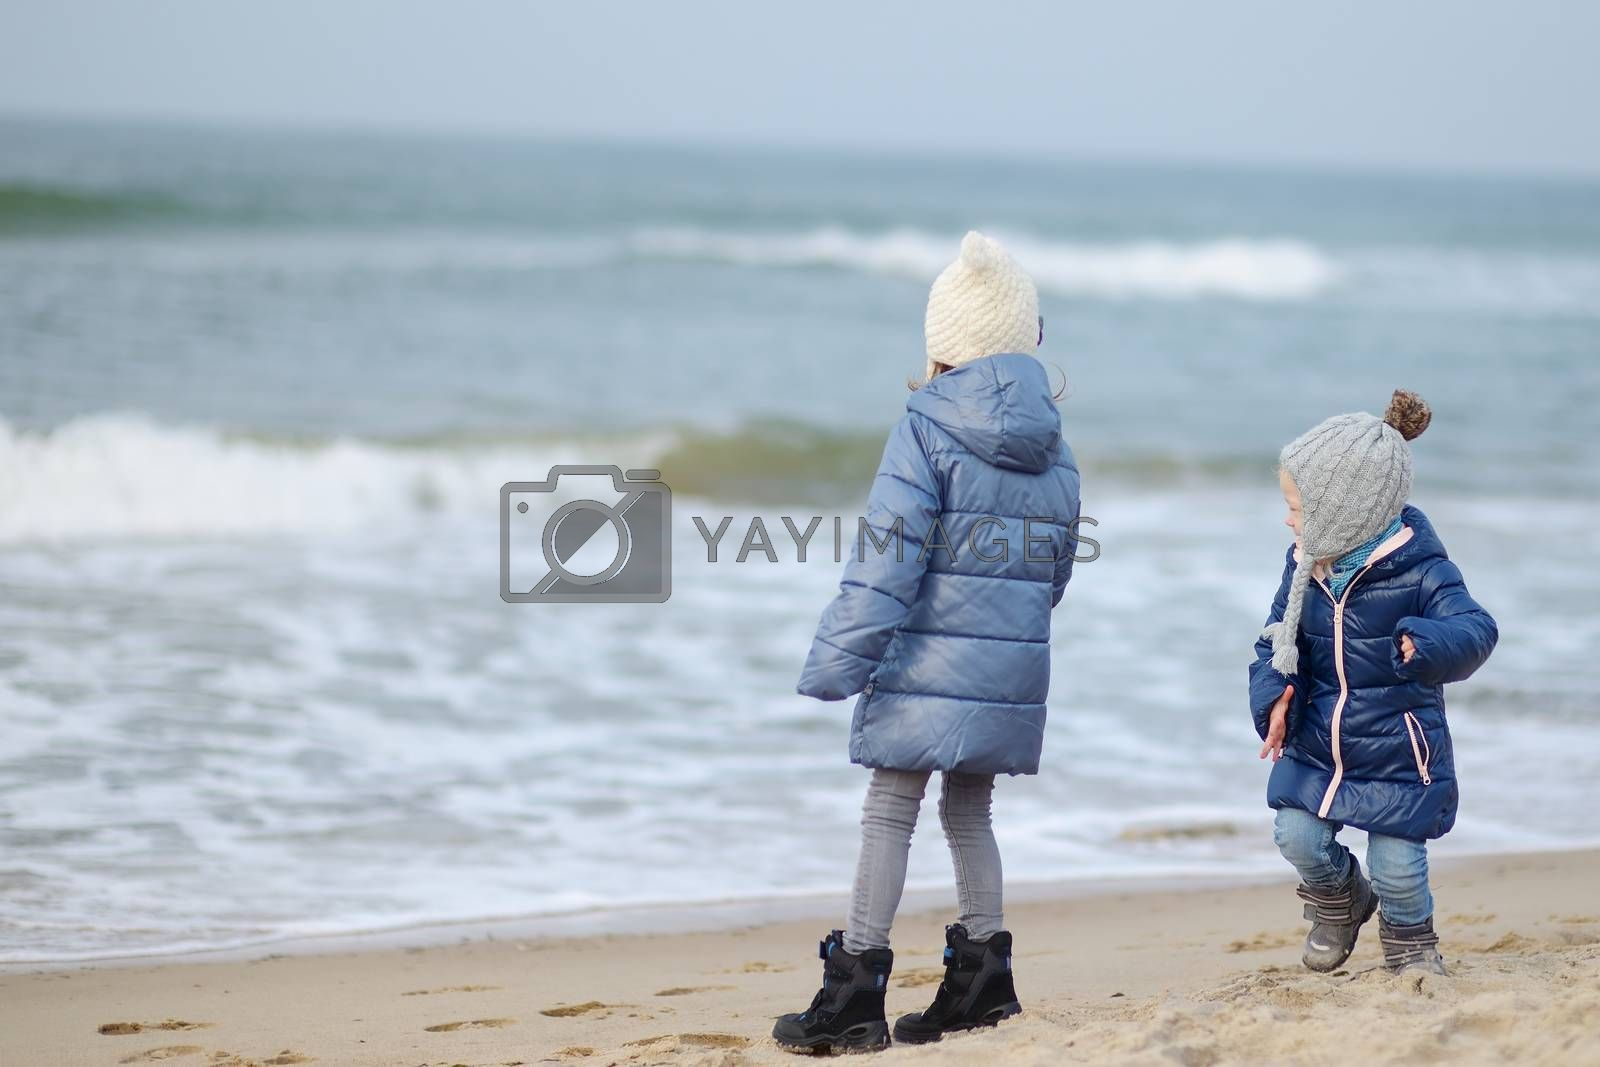 Adorable little girls playing by the ocean by maximkabb